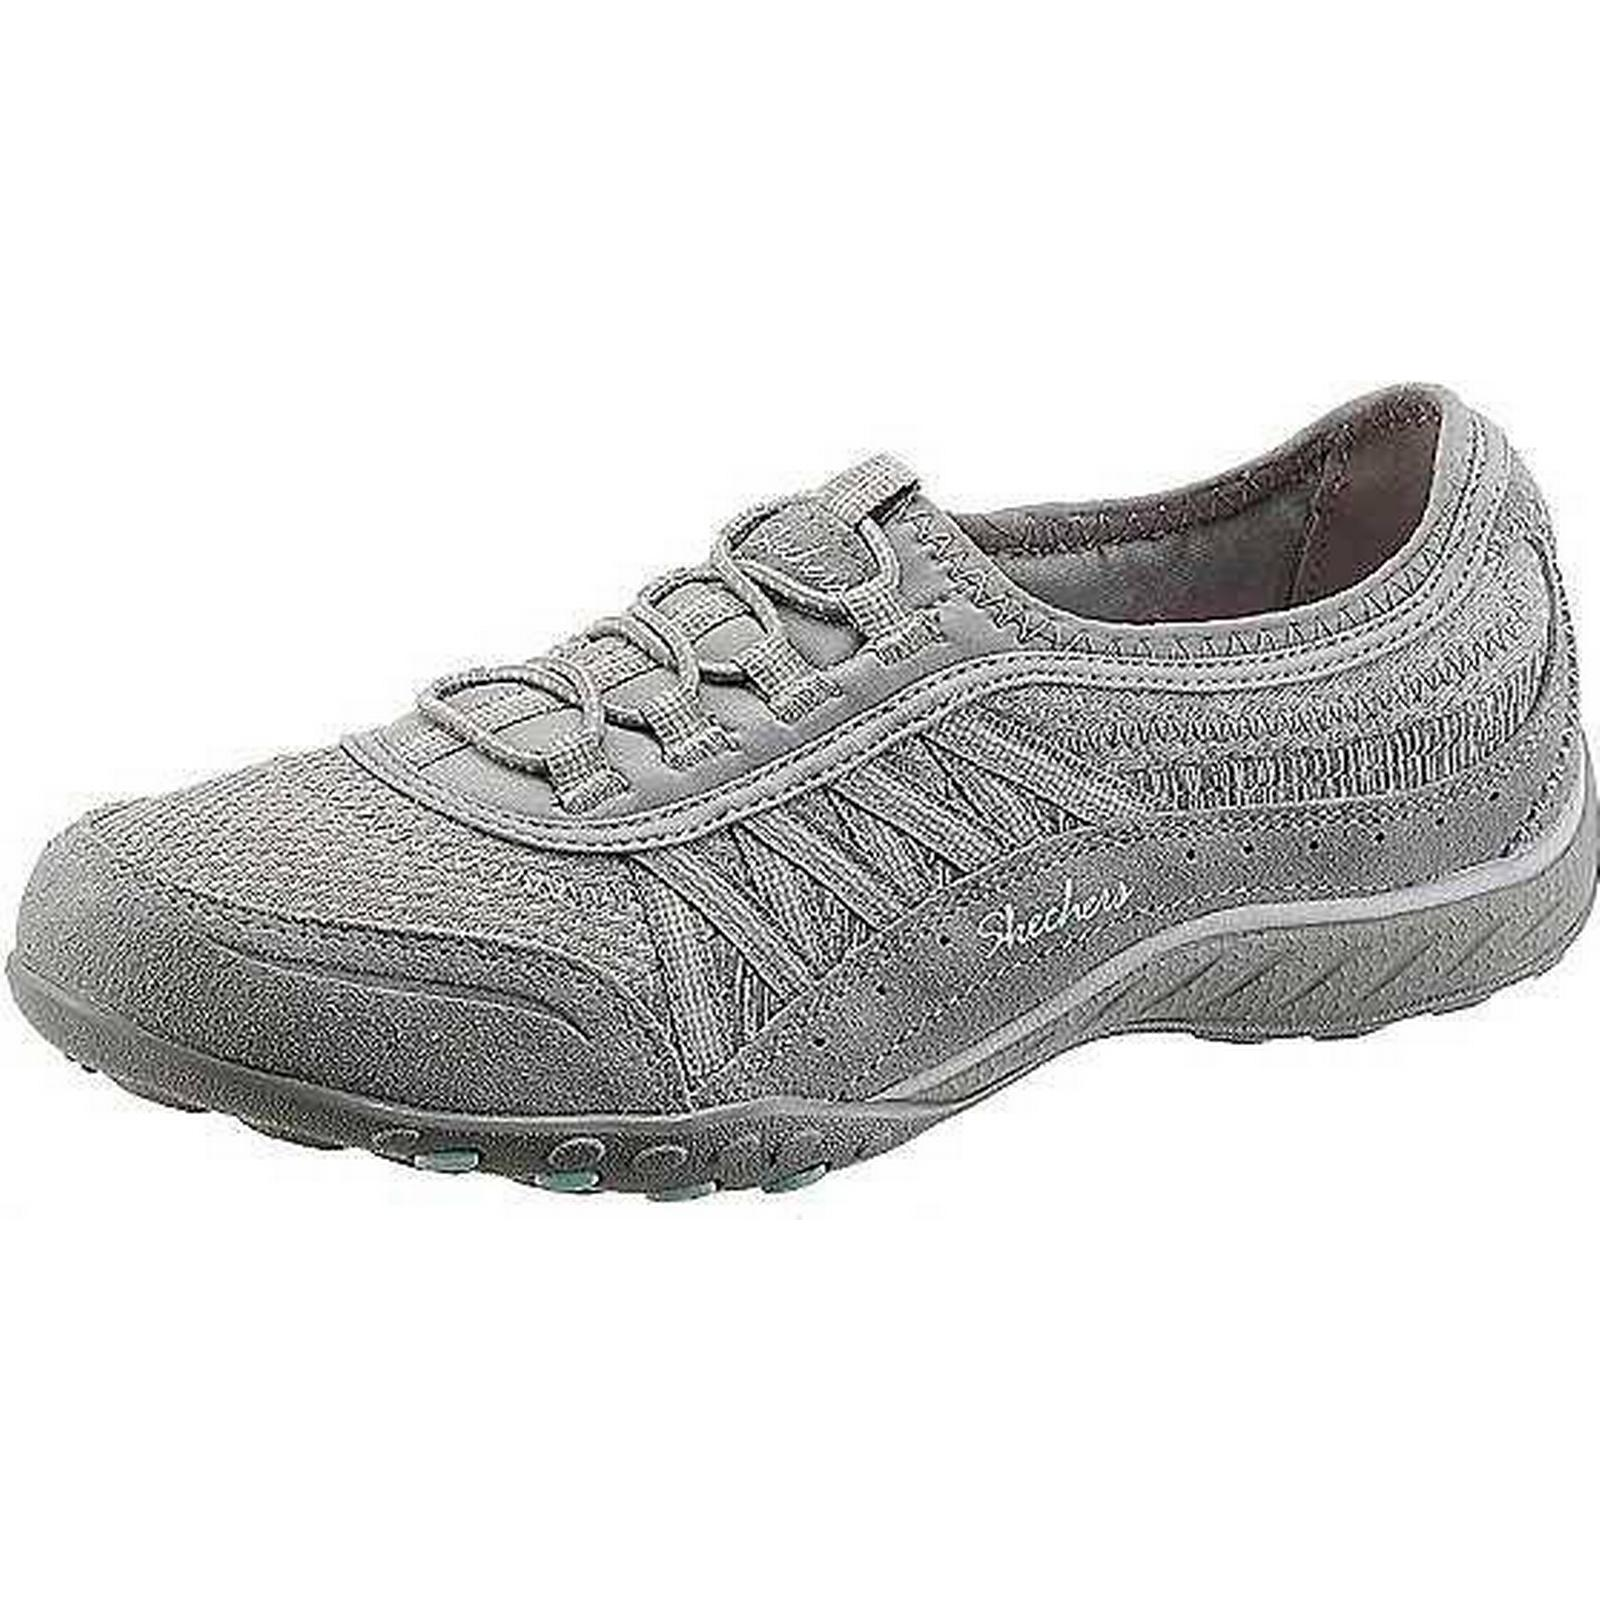 Skechers Breathe-Easy Point Taken by Slip-On Trainers by Taken Skechers 6615ff